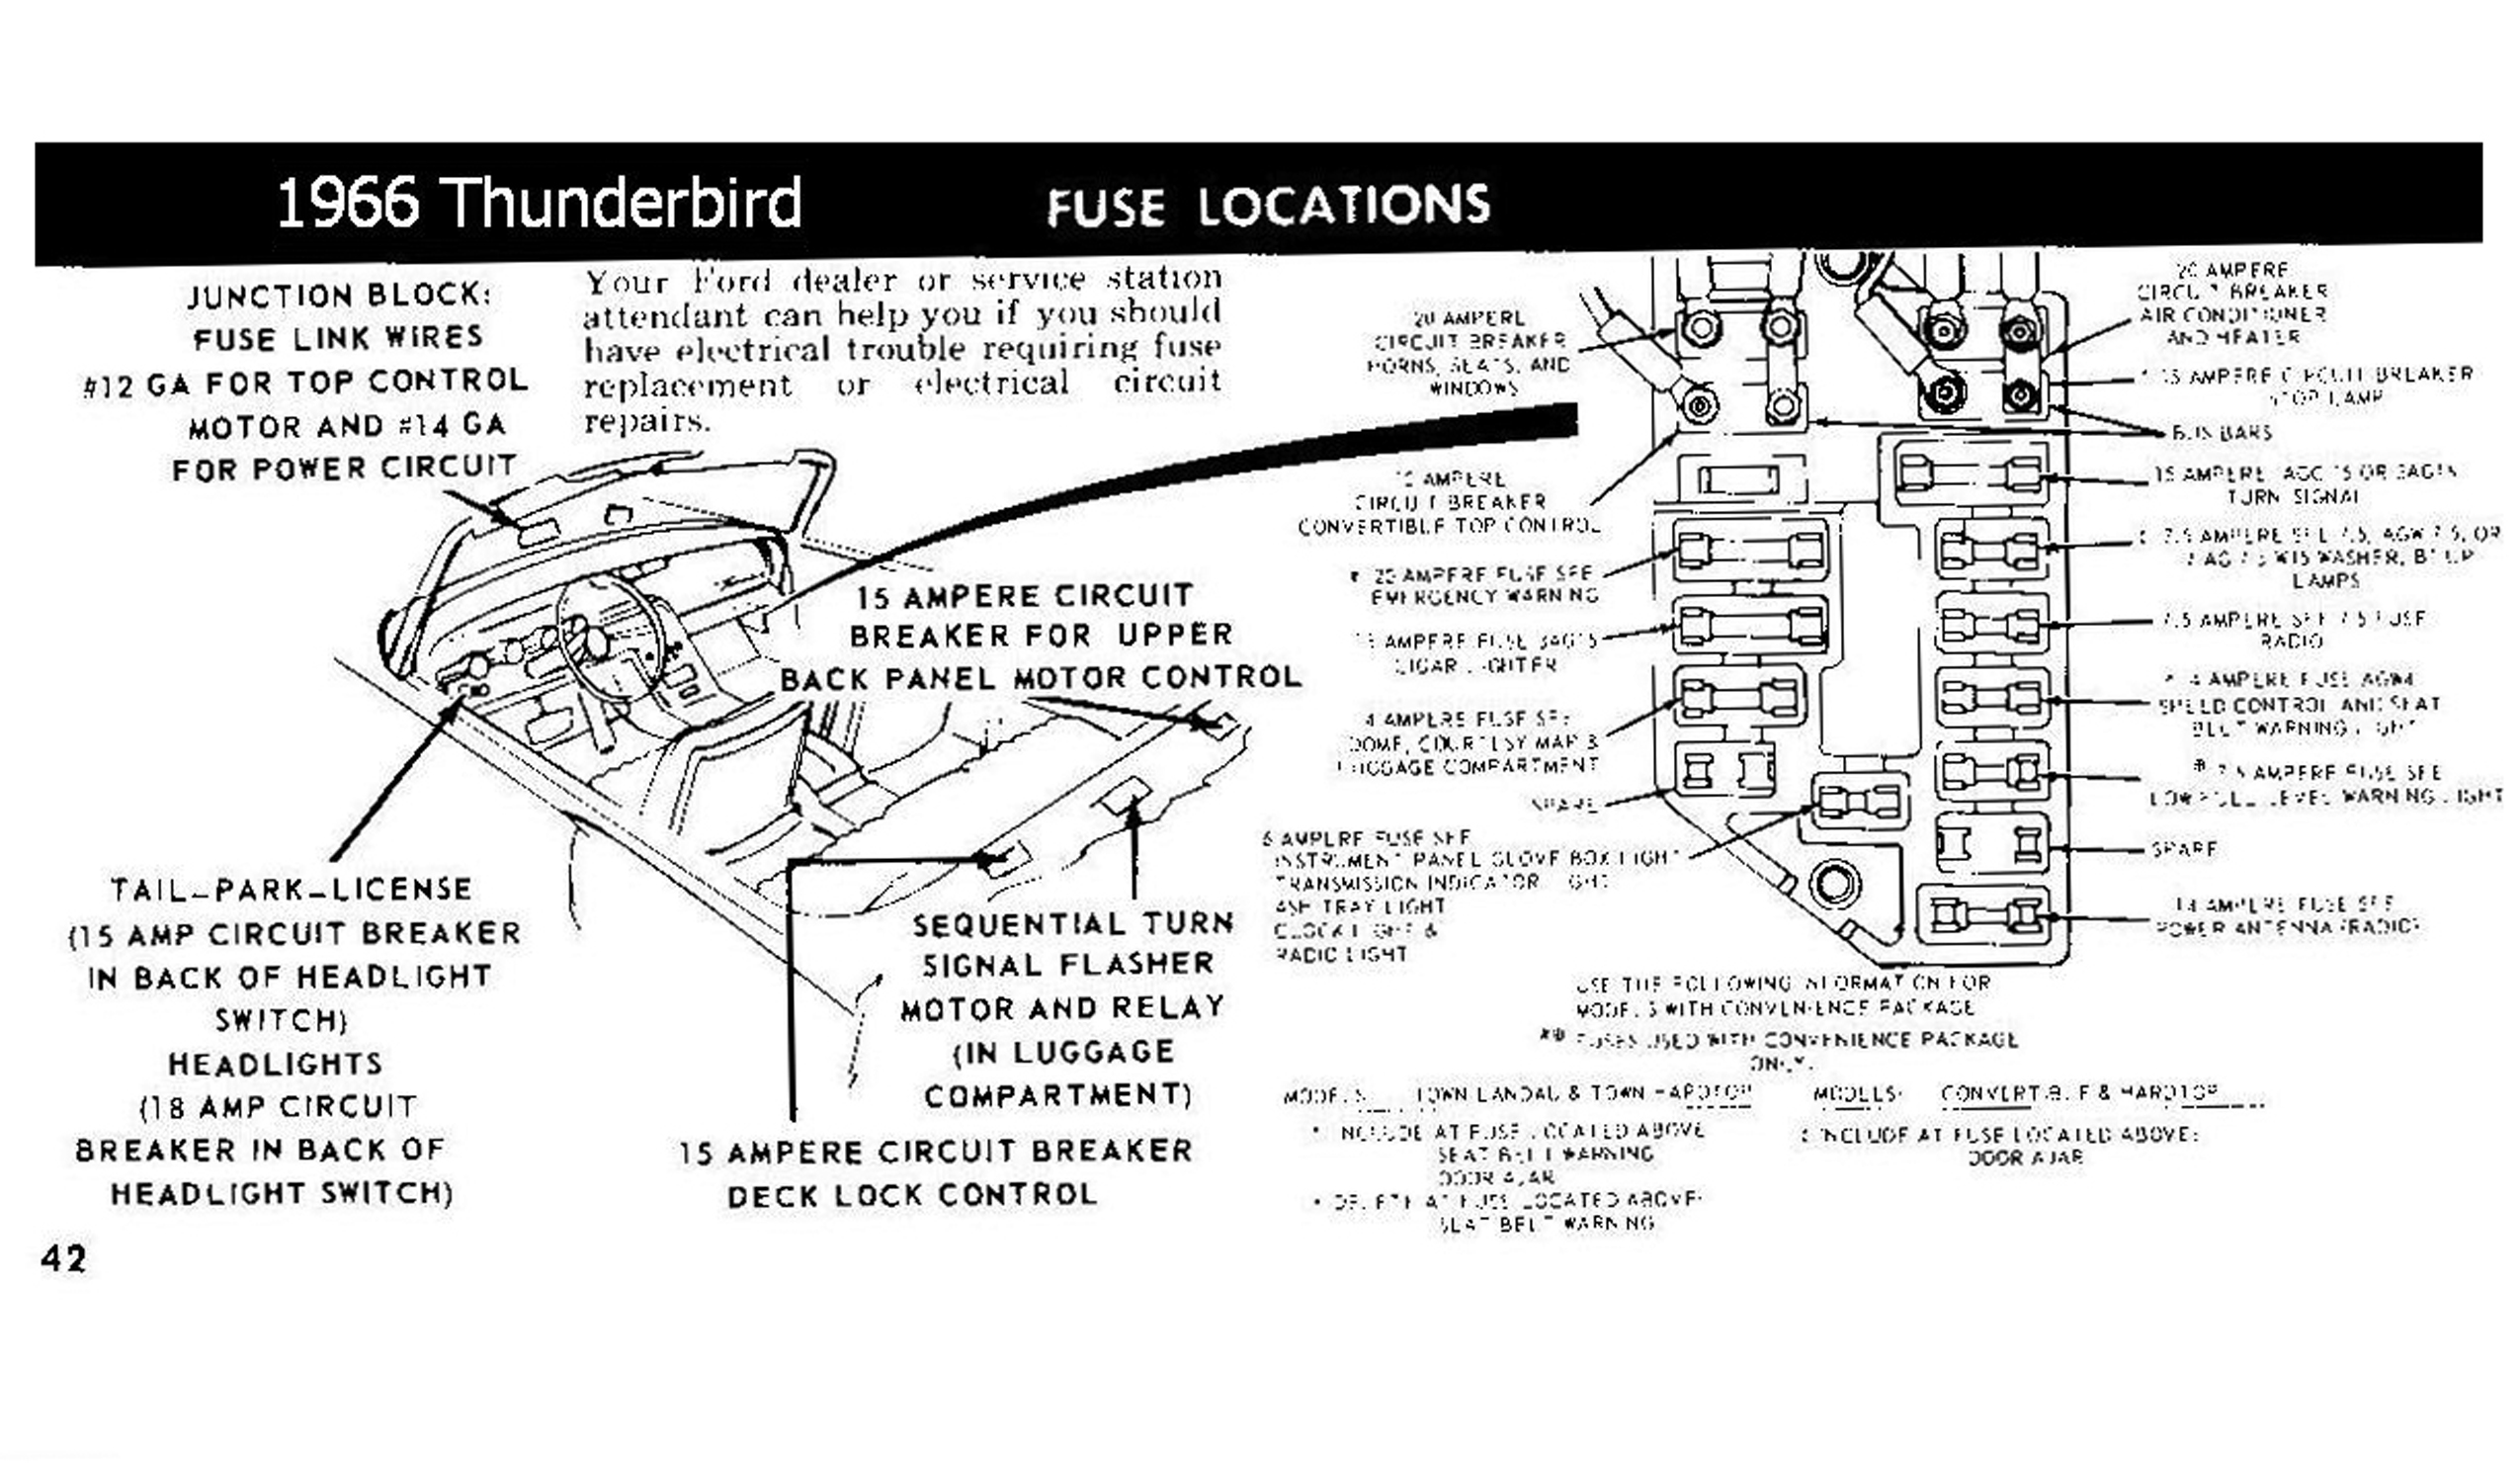 1955 Ford Thunderbird Fuse Box Location